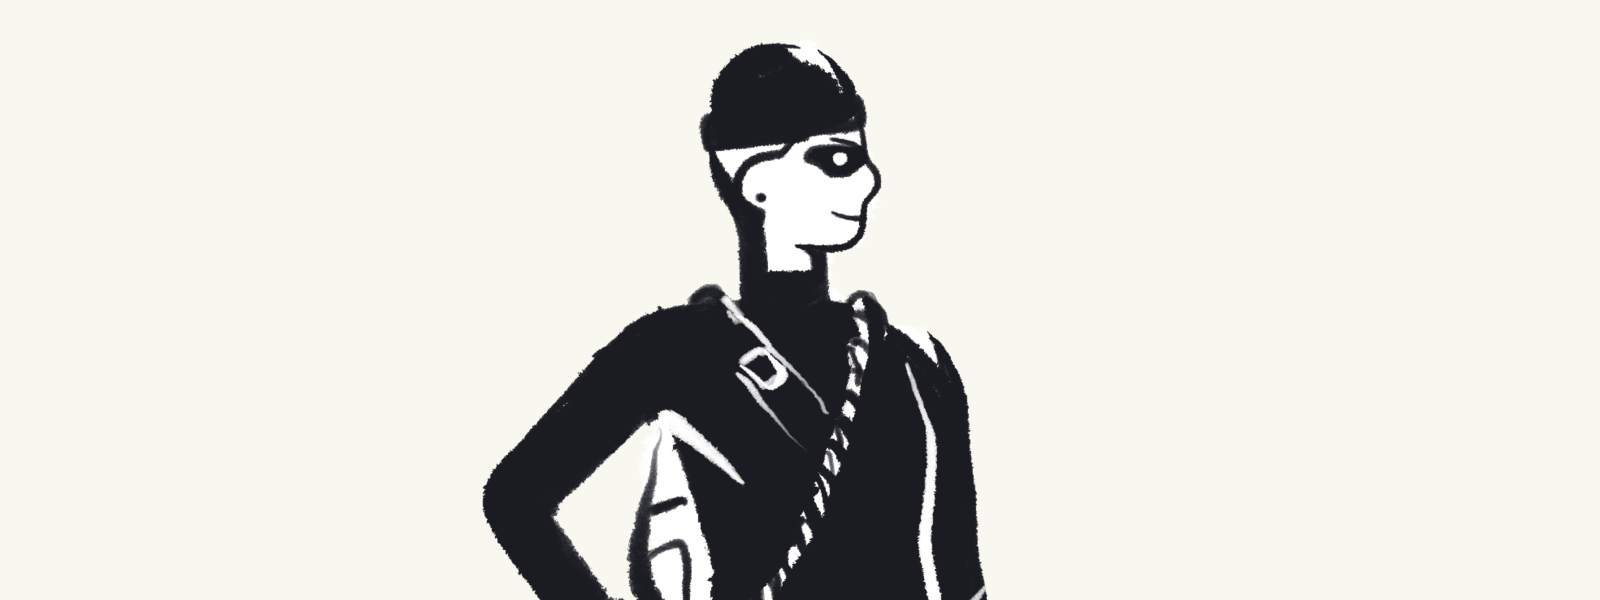 'Organizations must be vigilant': How occupational fraud is threatening your business